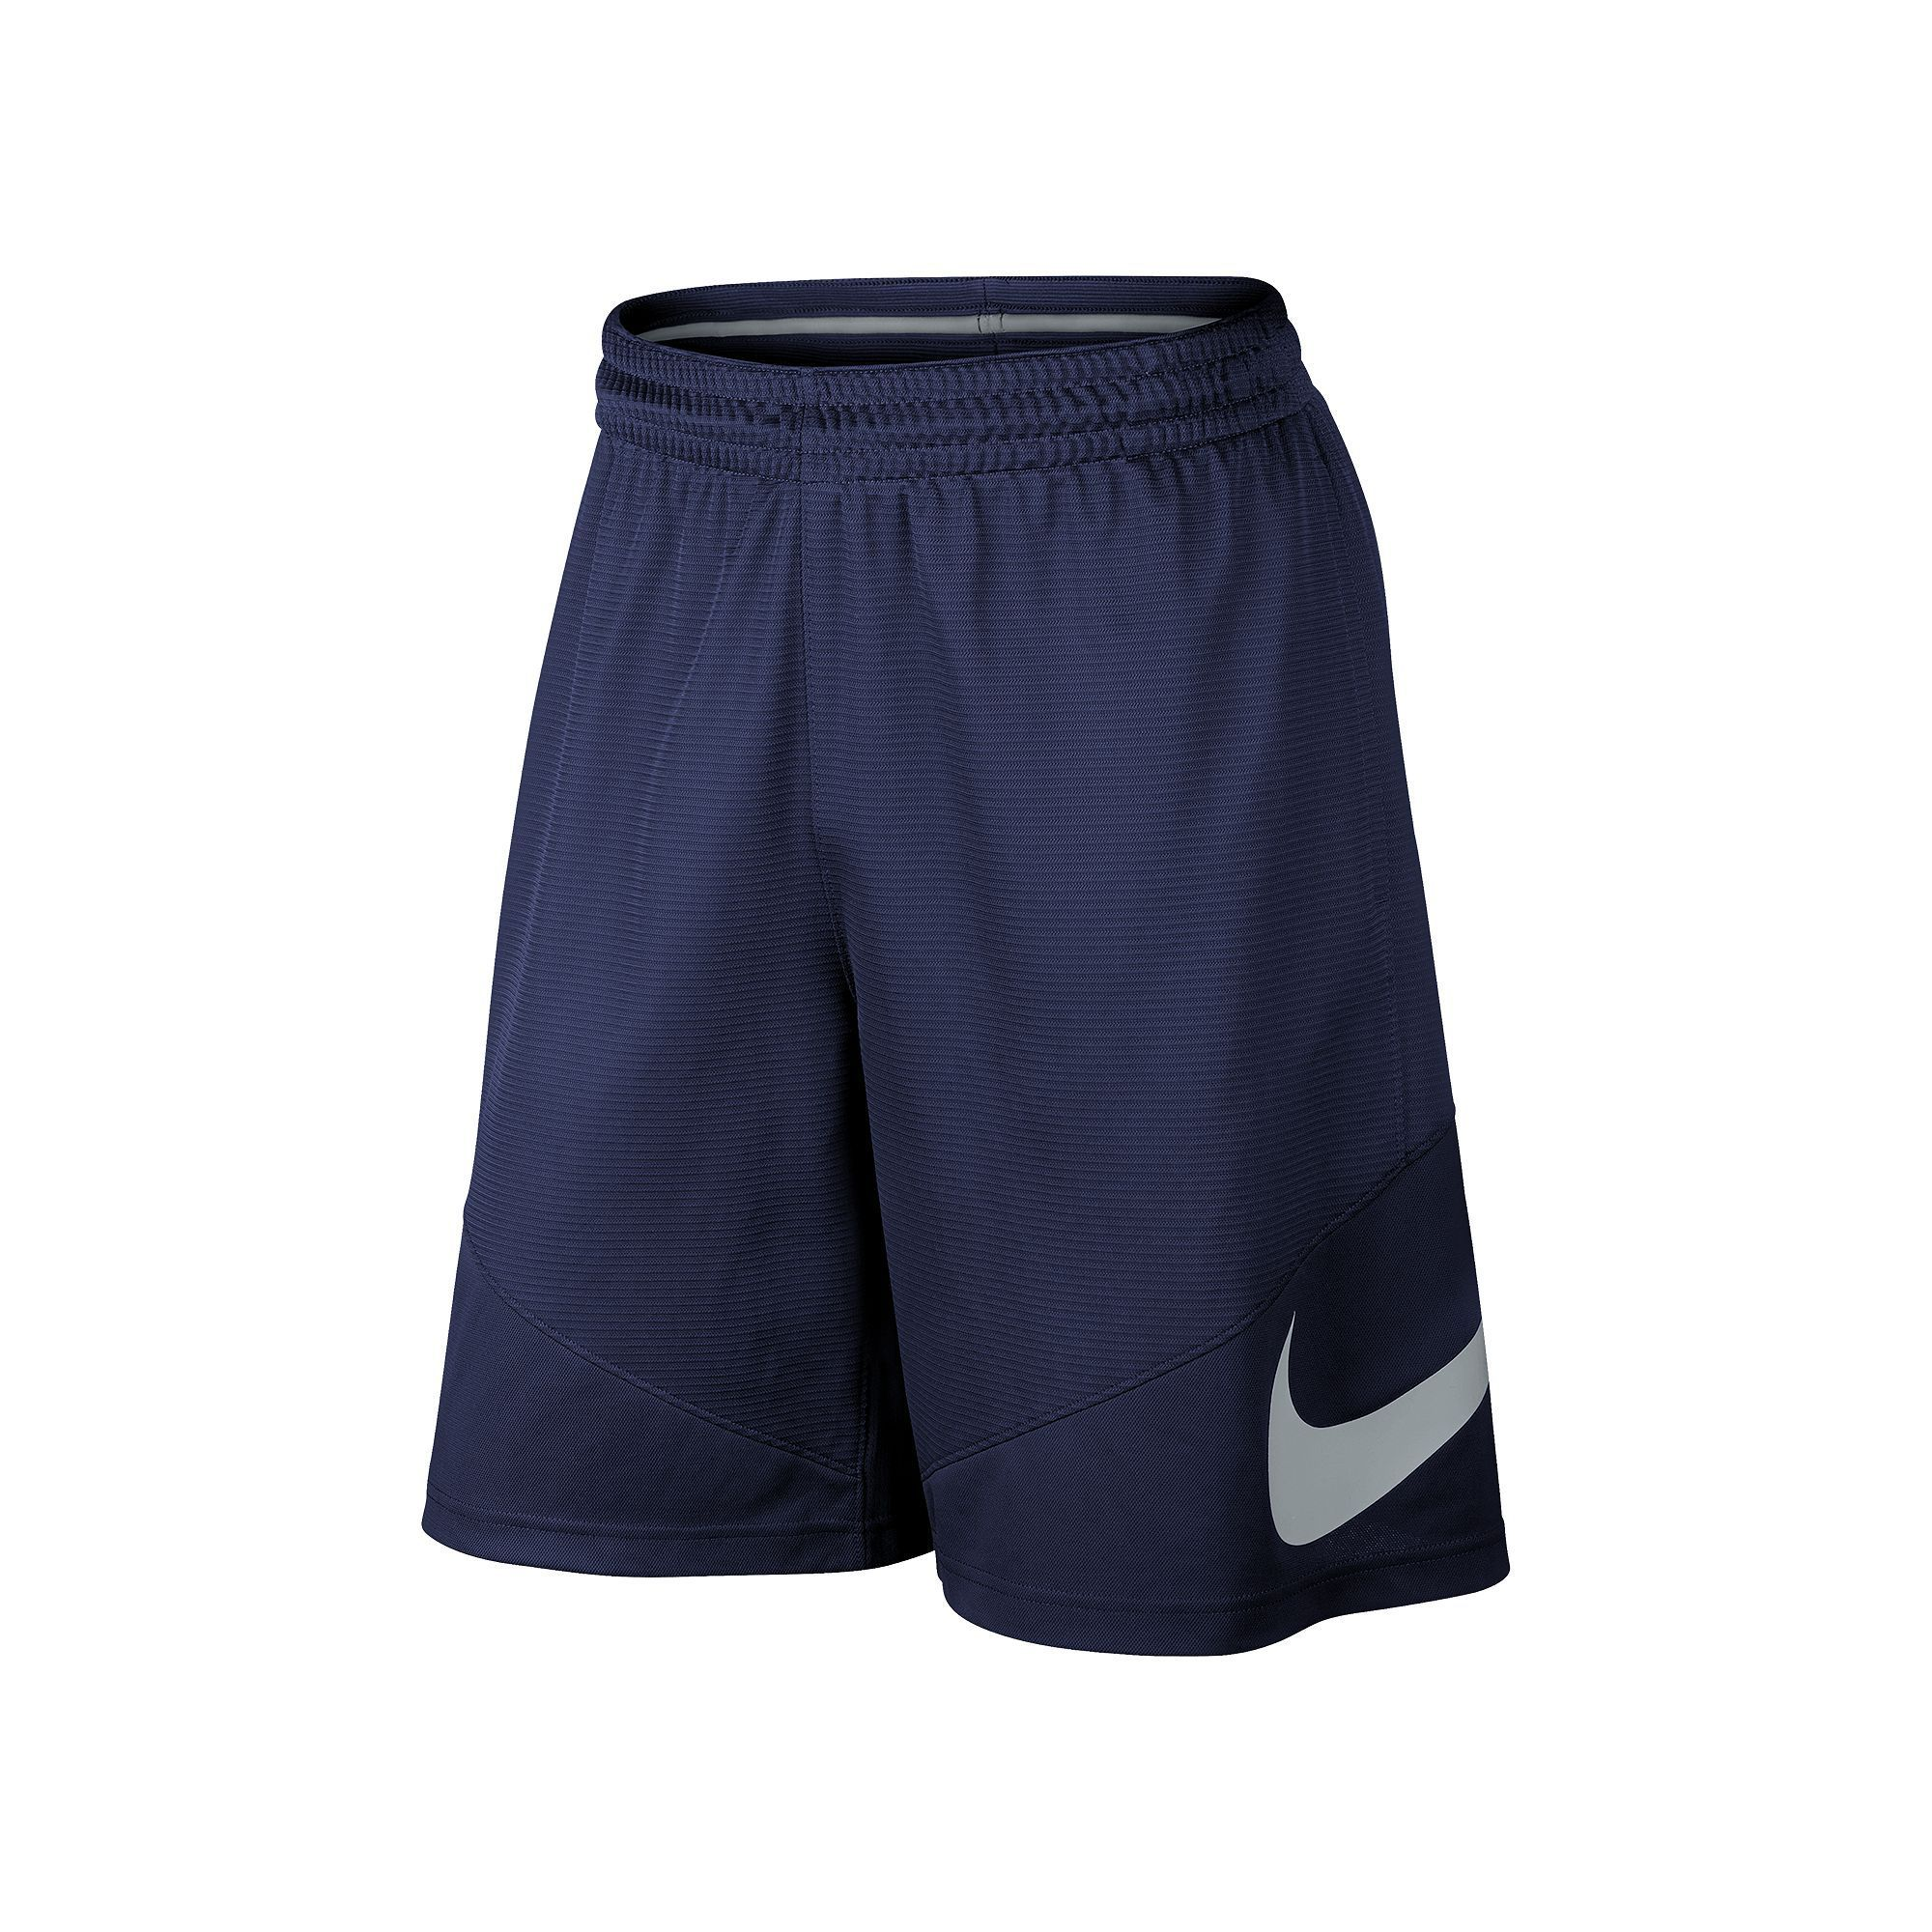 Big & Tall Nike Dri FIT Basketball Shorts | Nike dri fit